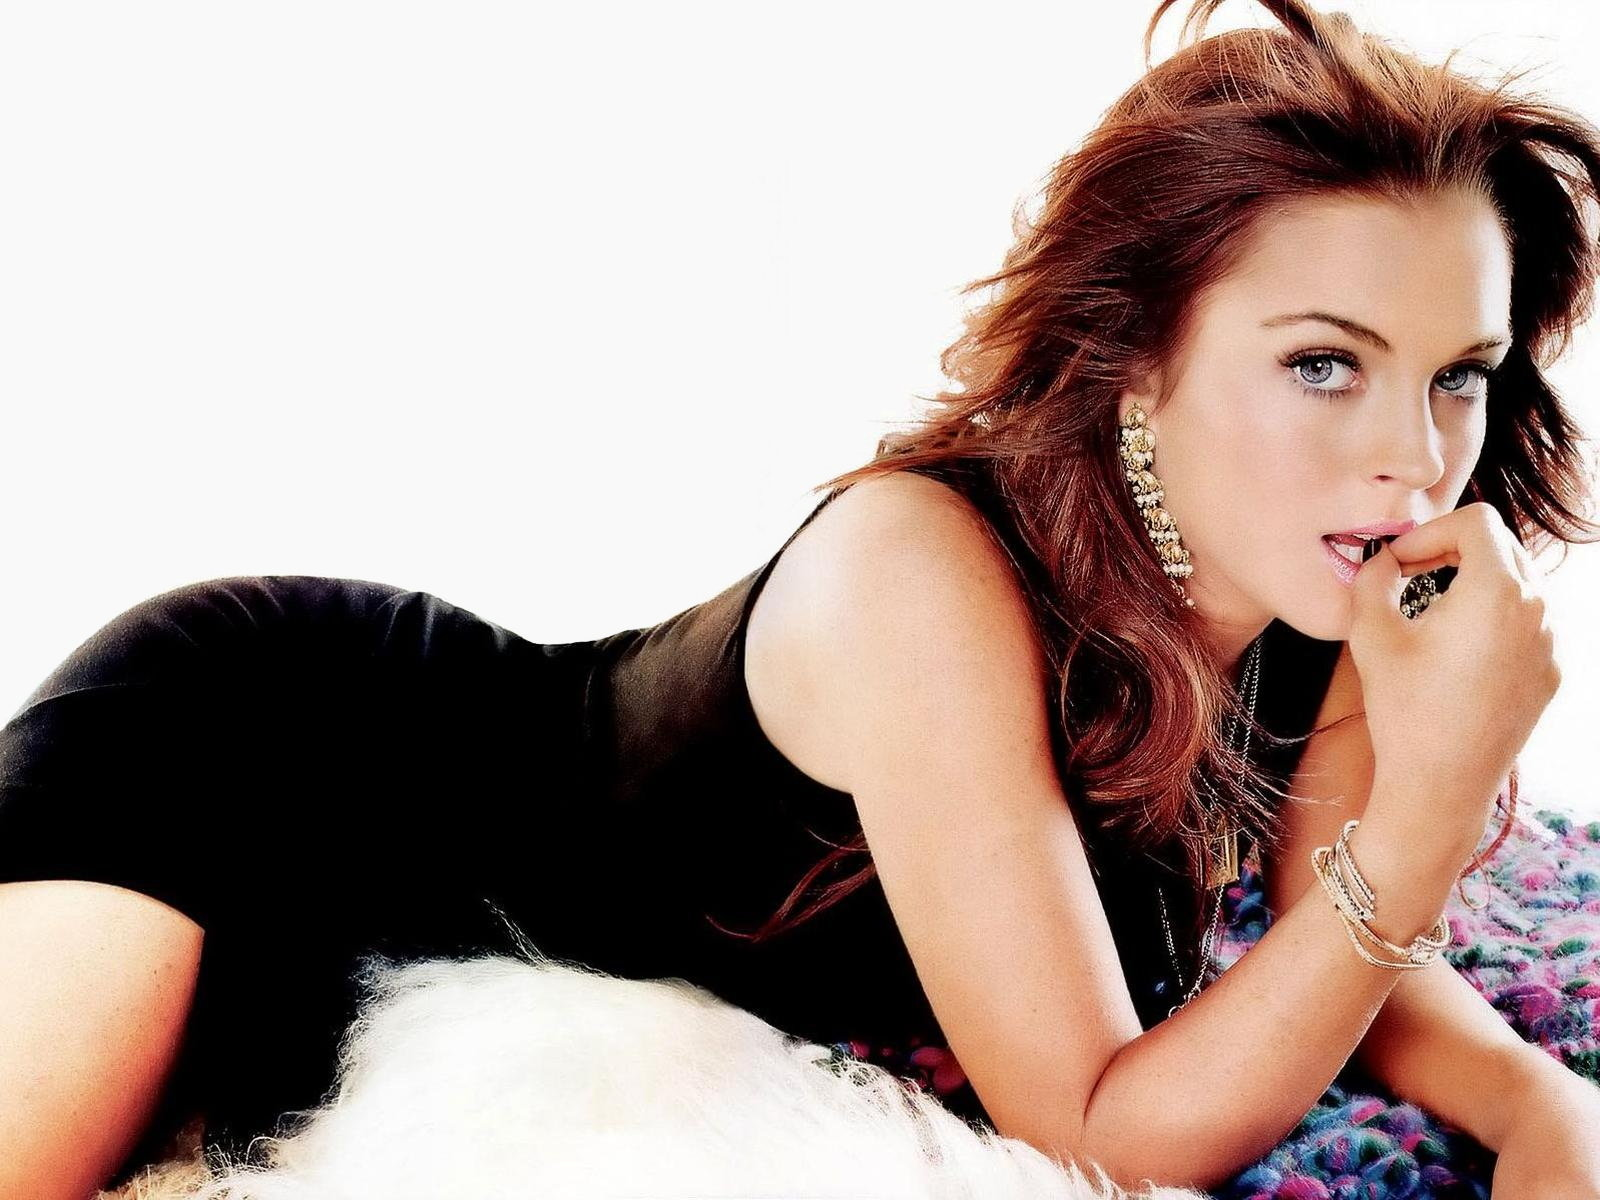 Hollywood Actress Lindsay Lohan Beautiful Wallpapers | Hot Wallpapers